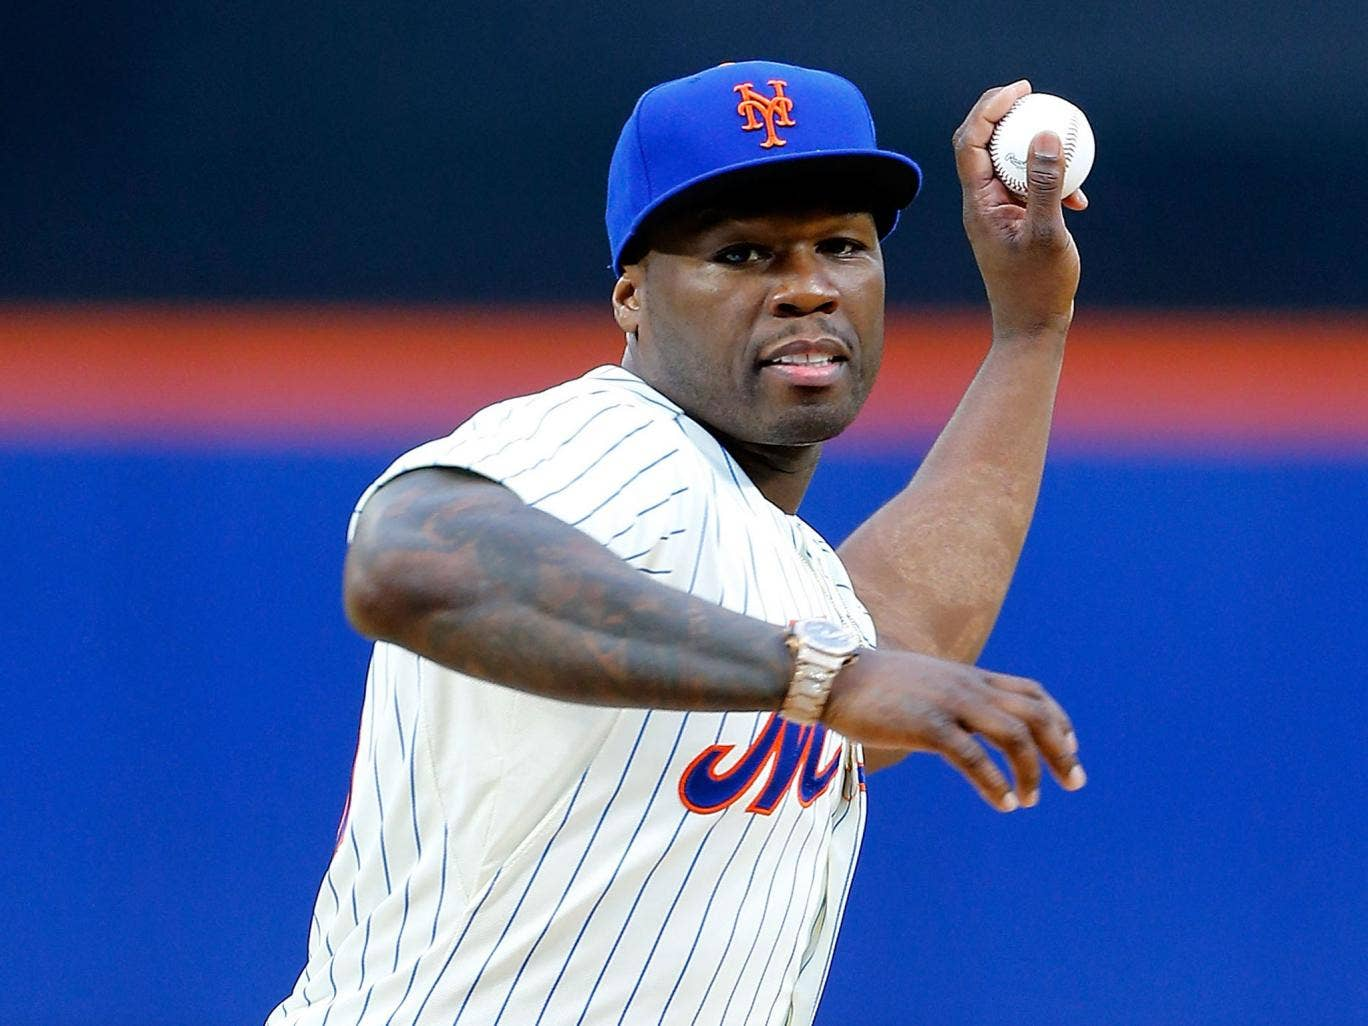 50 Cent throws the first pitch ahead of New York Mets v Pittsburgh Pirates game